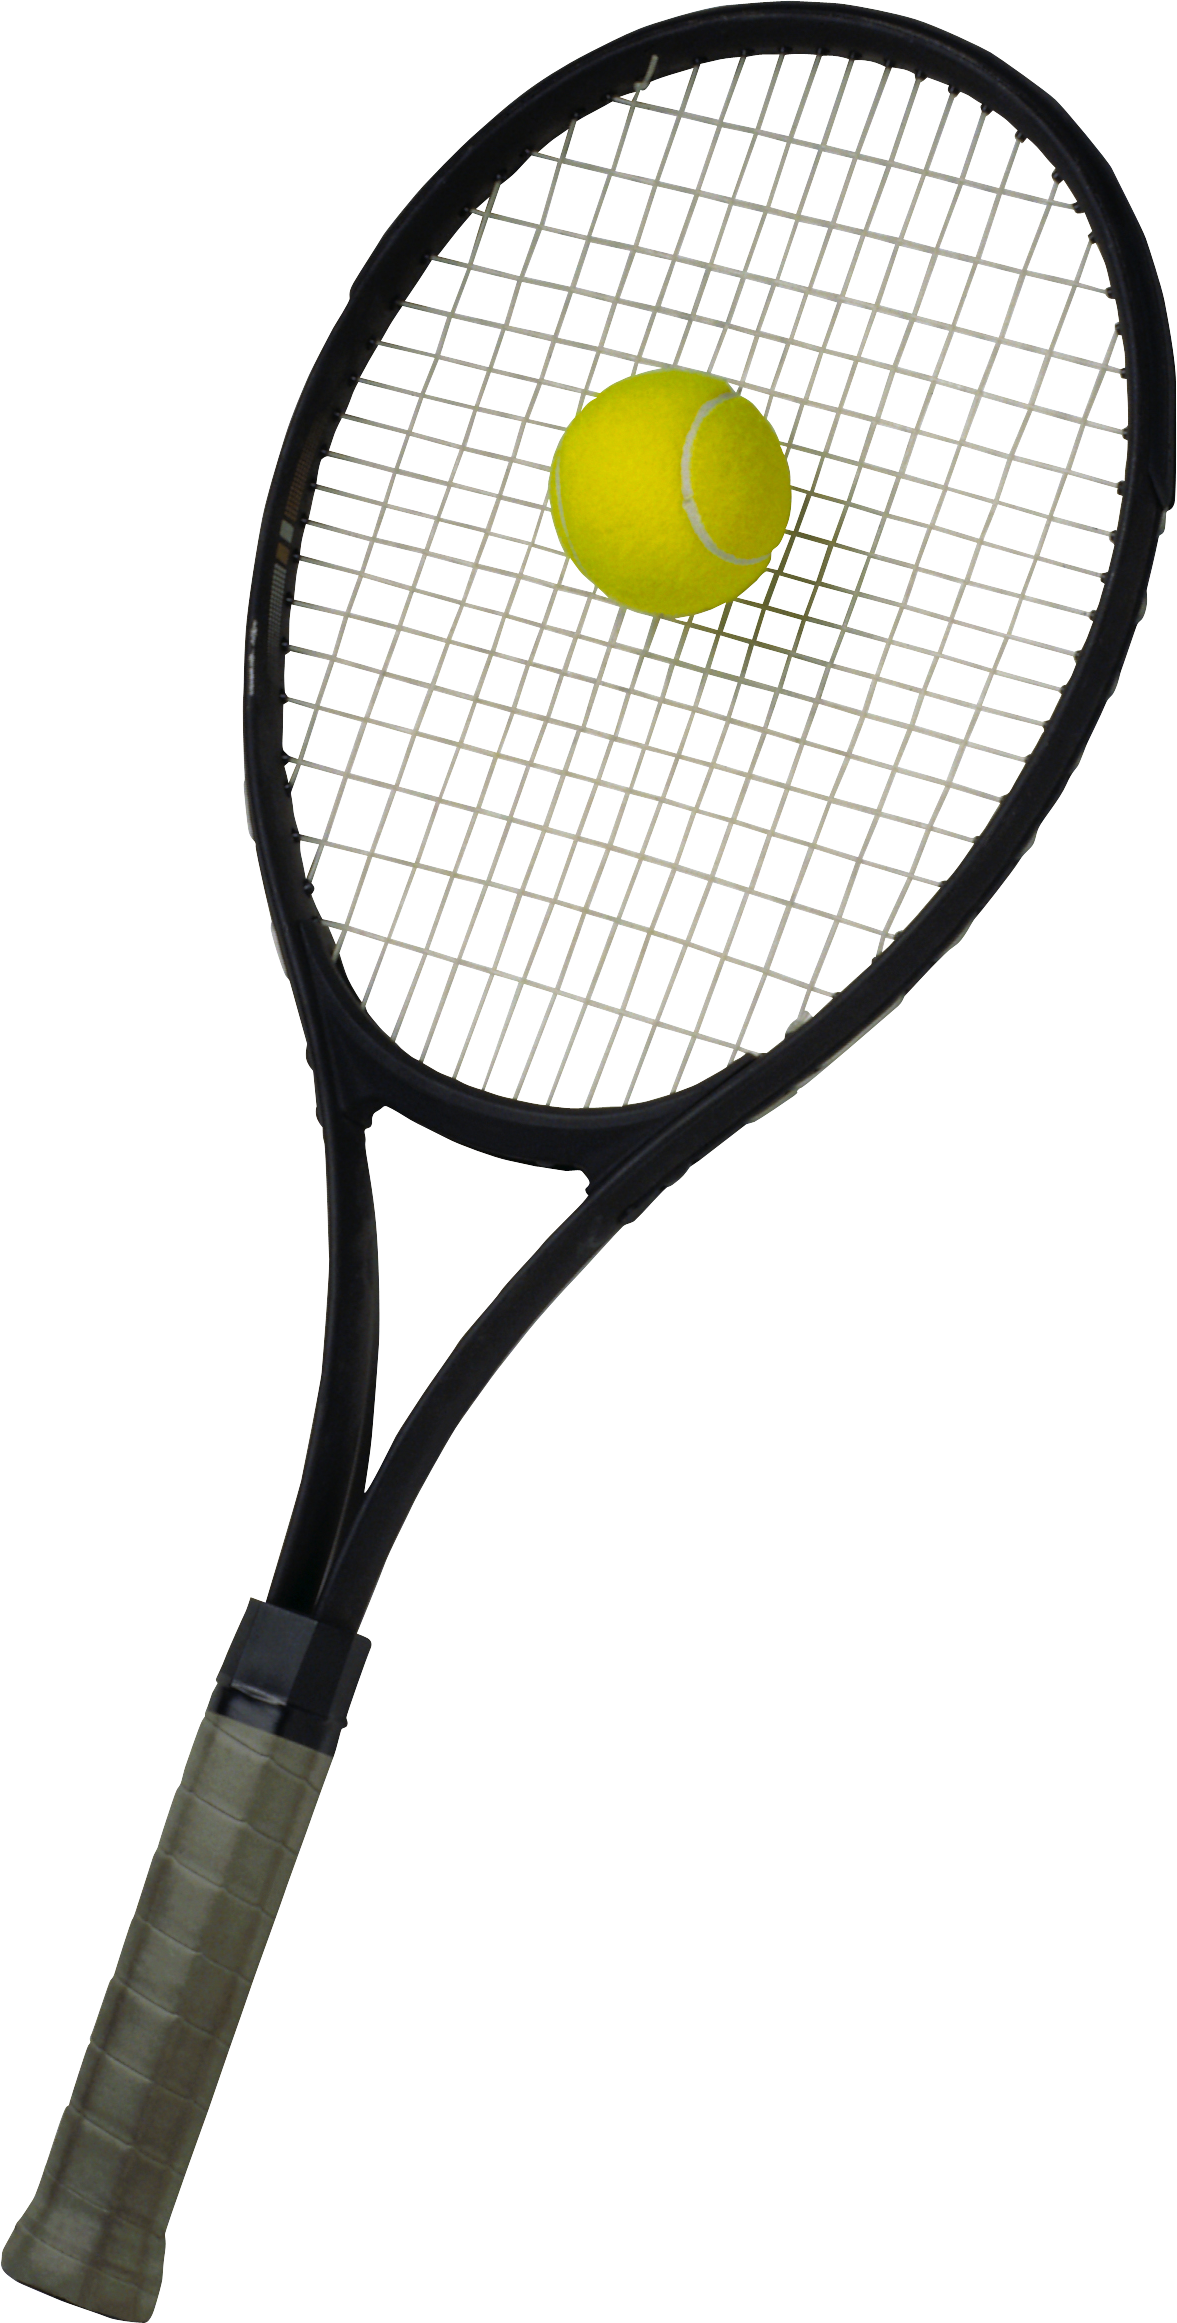 tennis png images download crazypngm crazy #26676